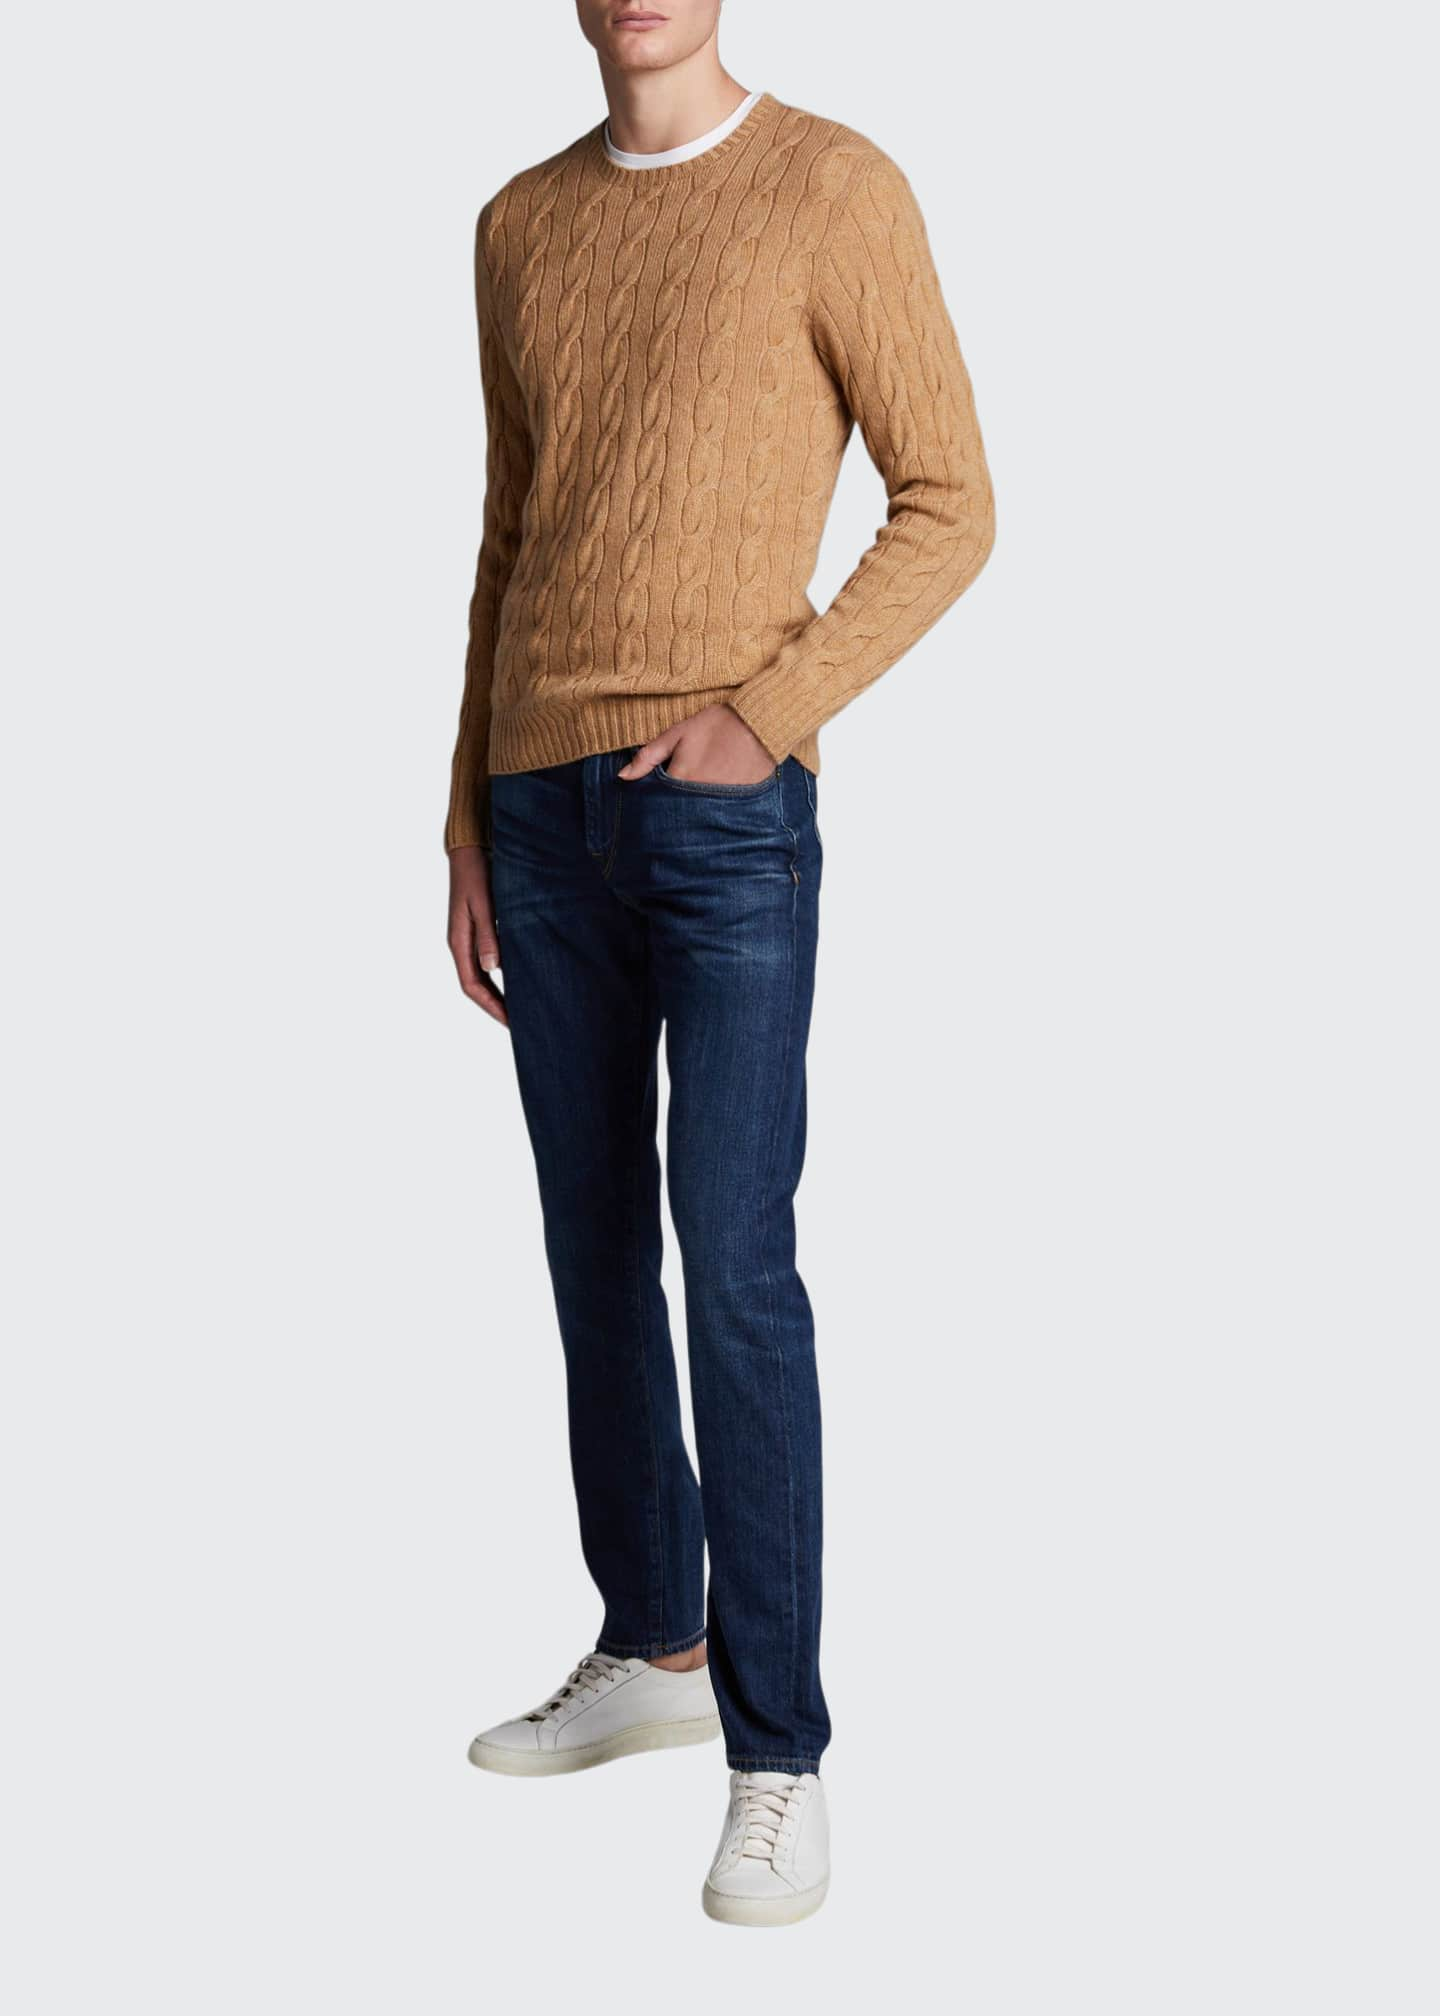 Image 1 of 4: Men's Cashmere Cable-Knit Crewneck Sweater, Beige